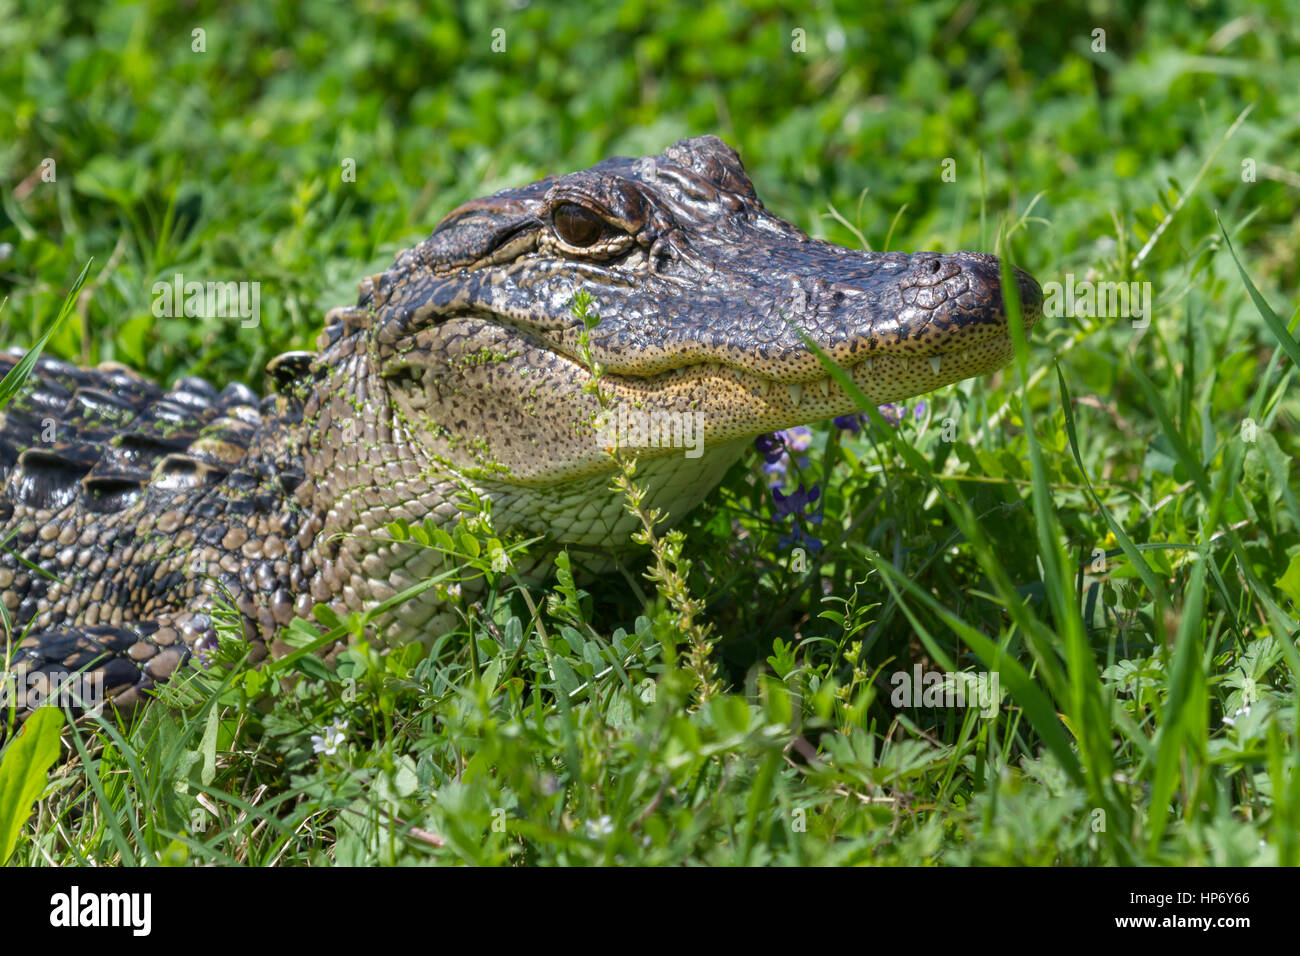 alligator in the green grass - Stock Image